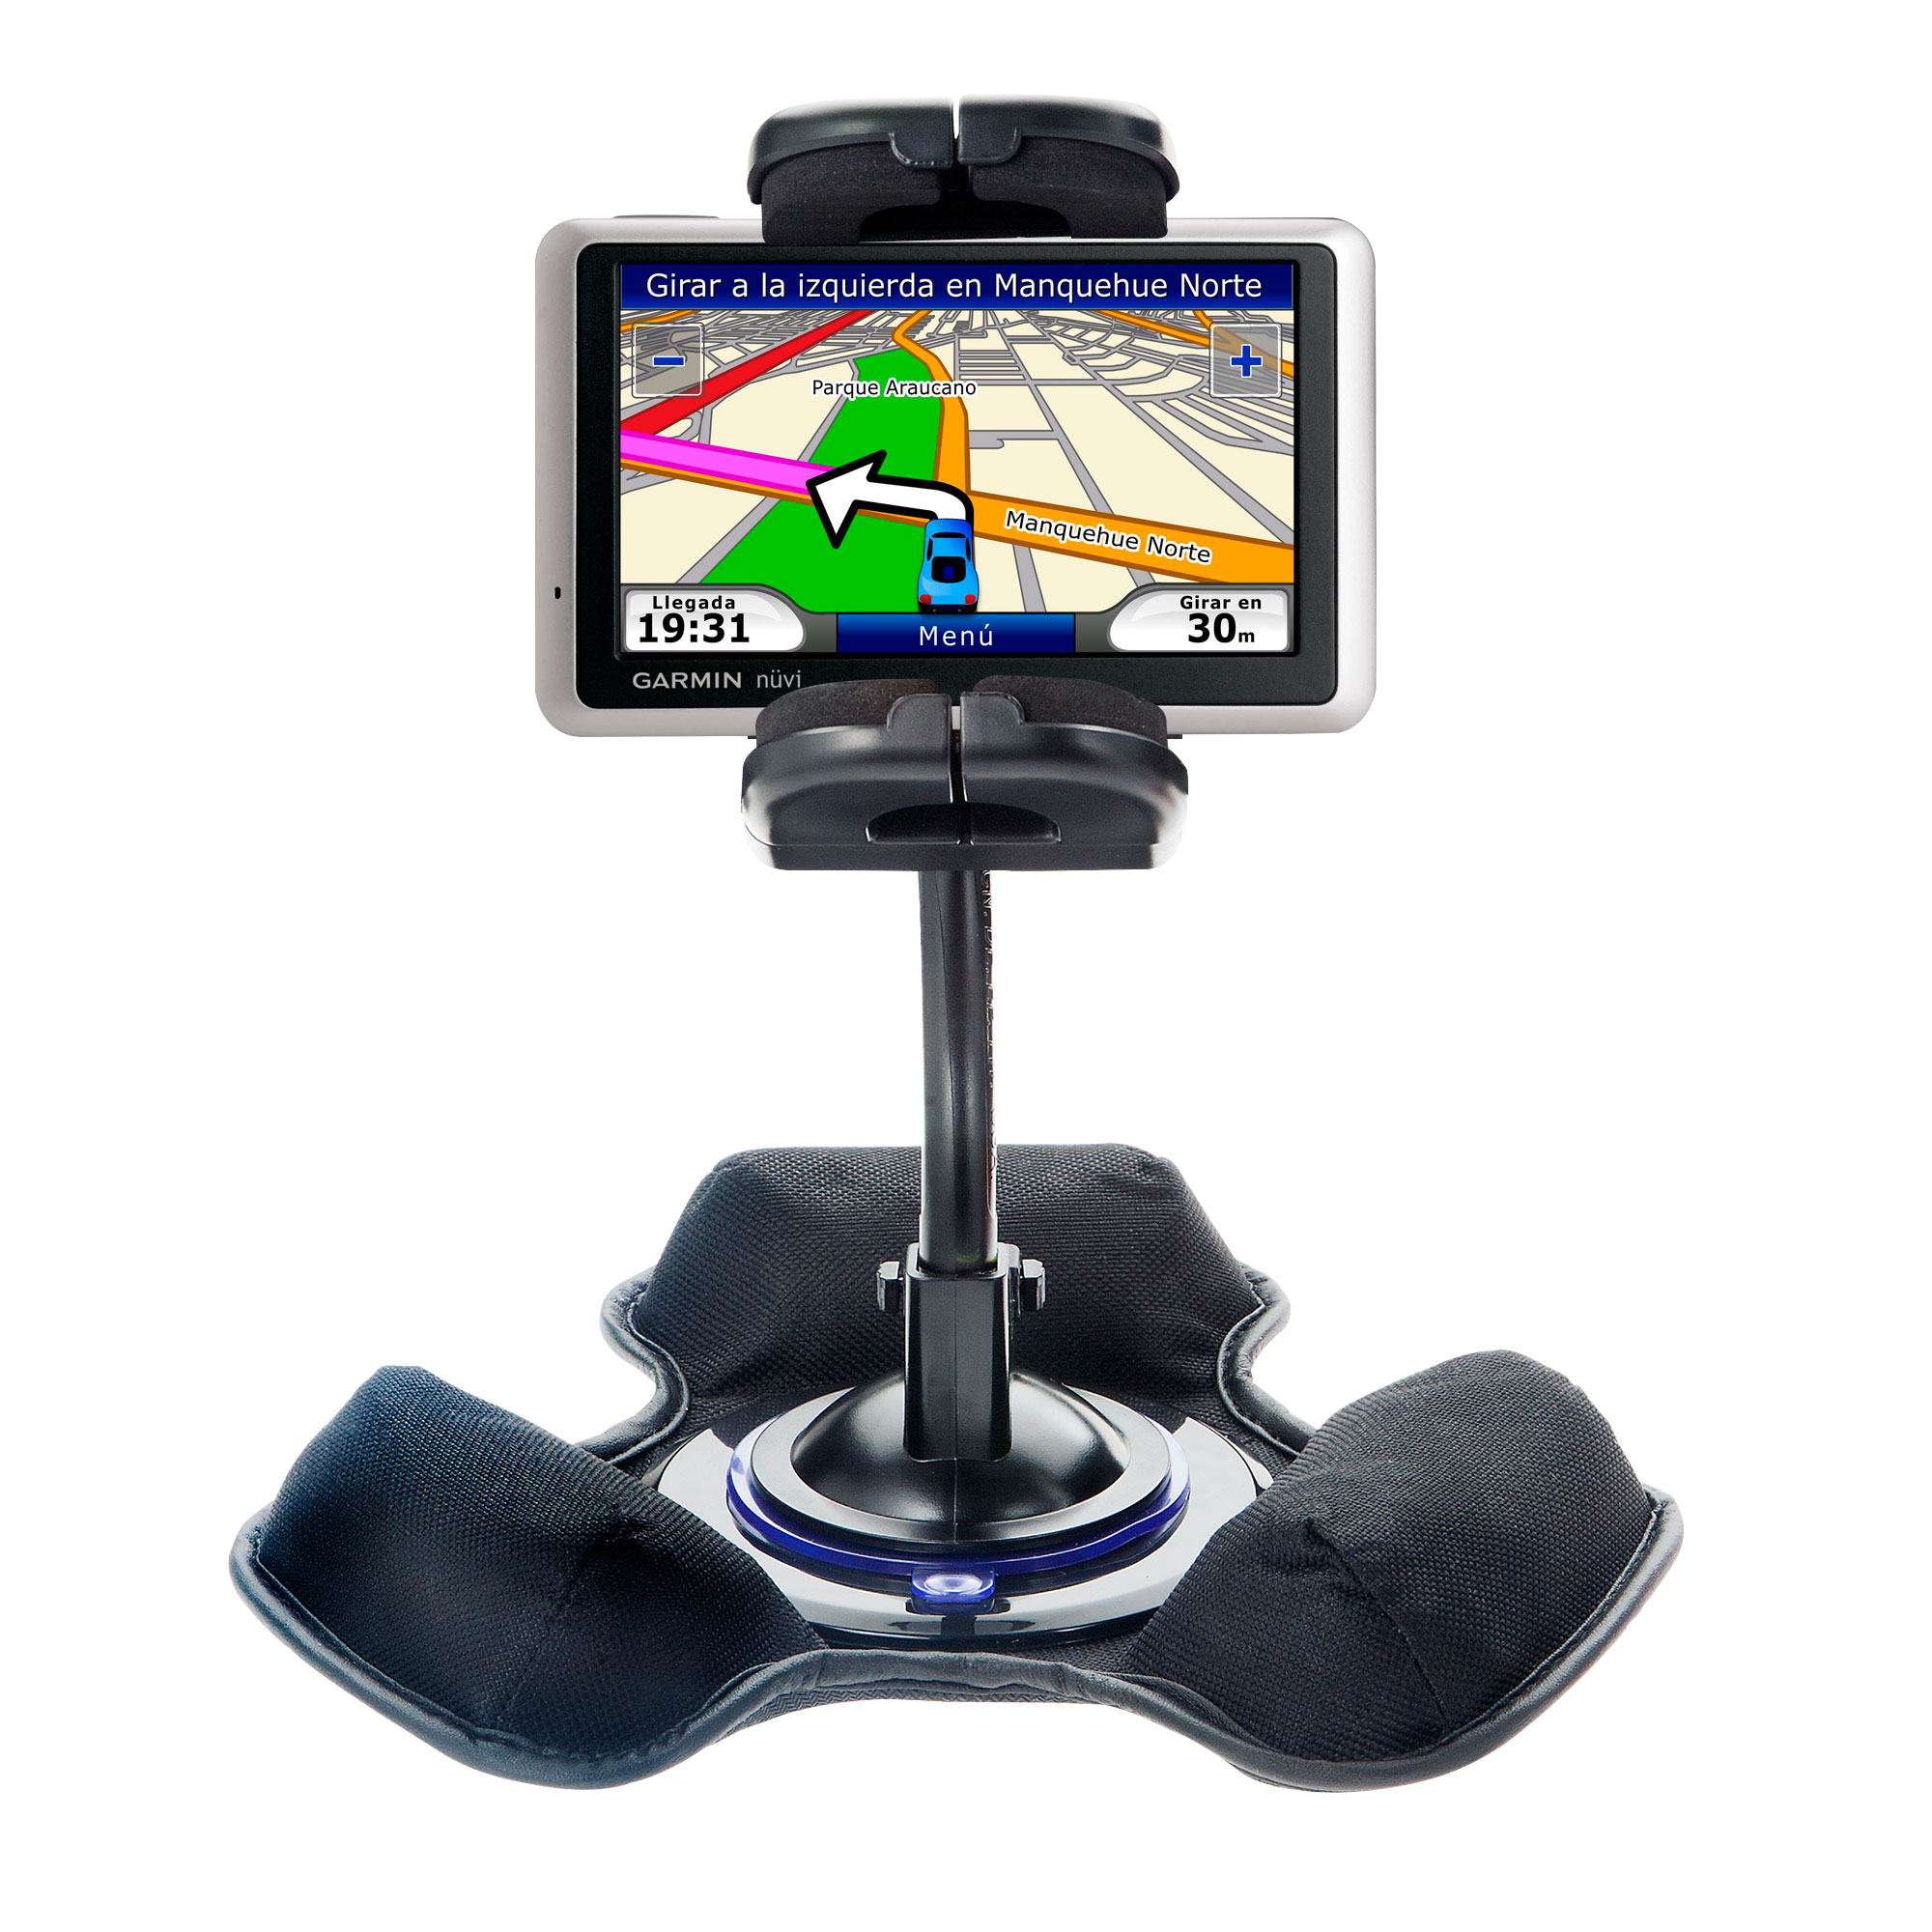 Dash and Windshield Holder compatible with the Garmin Nuvi 1370T